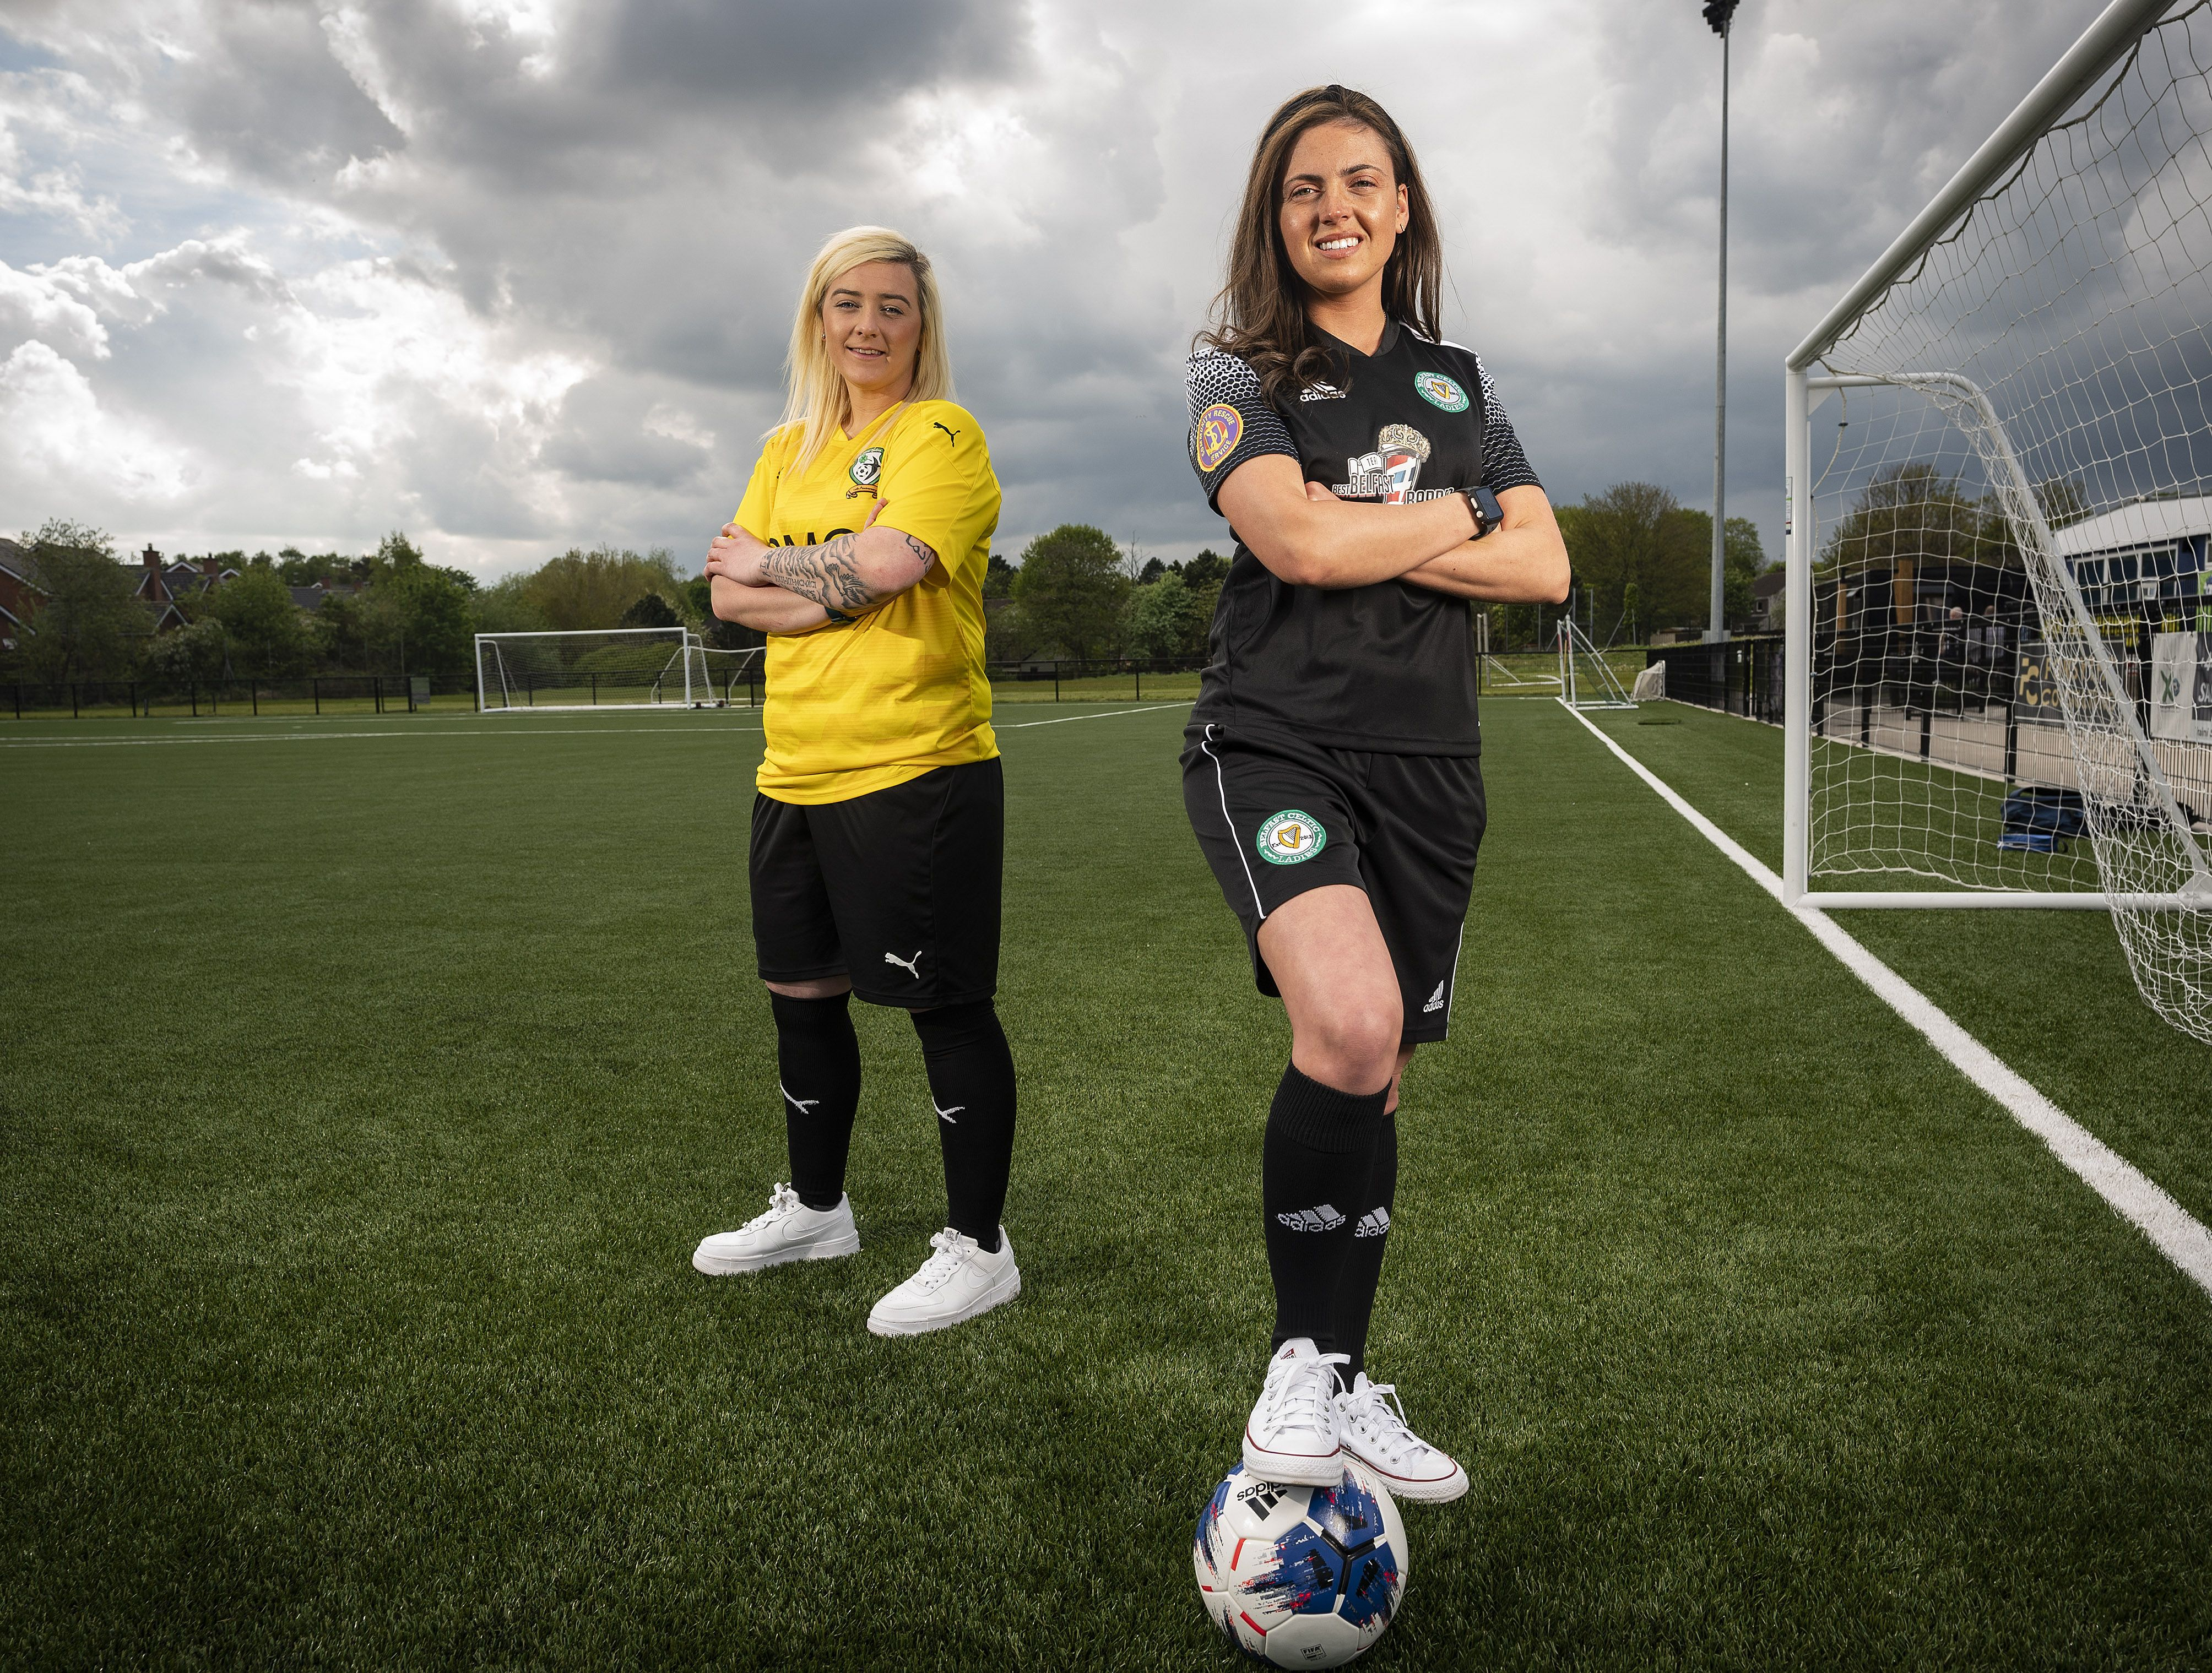 Pictured are players Claire Shaw (St James Swifts Ladies) and Eadaoin Ni Chiarrain (Belfast Celtic Ladies)